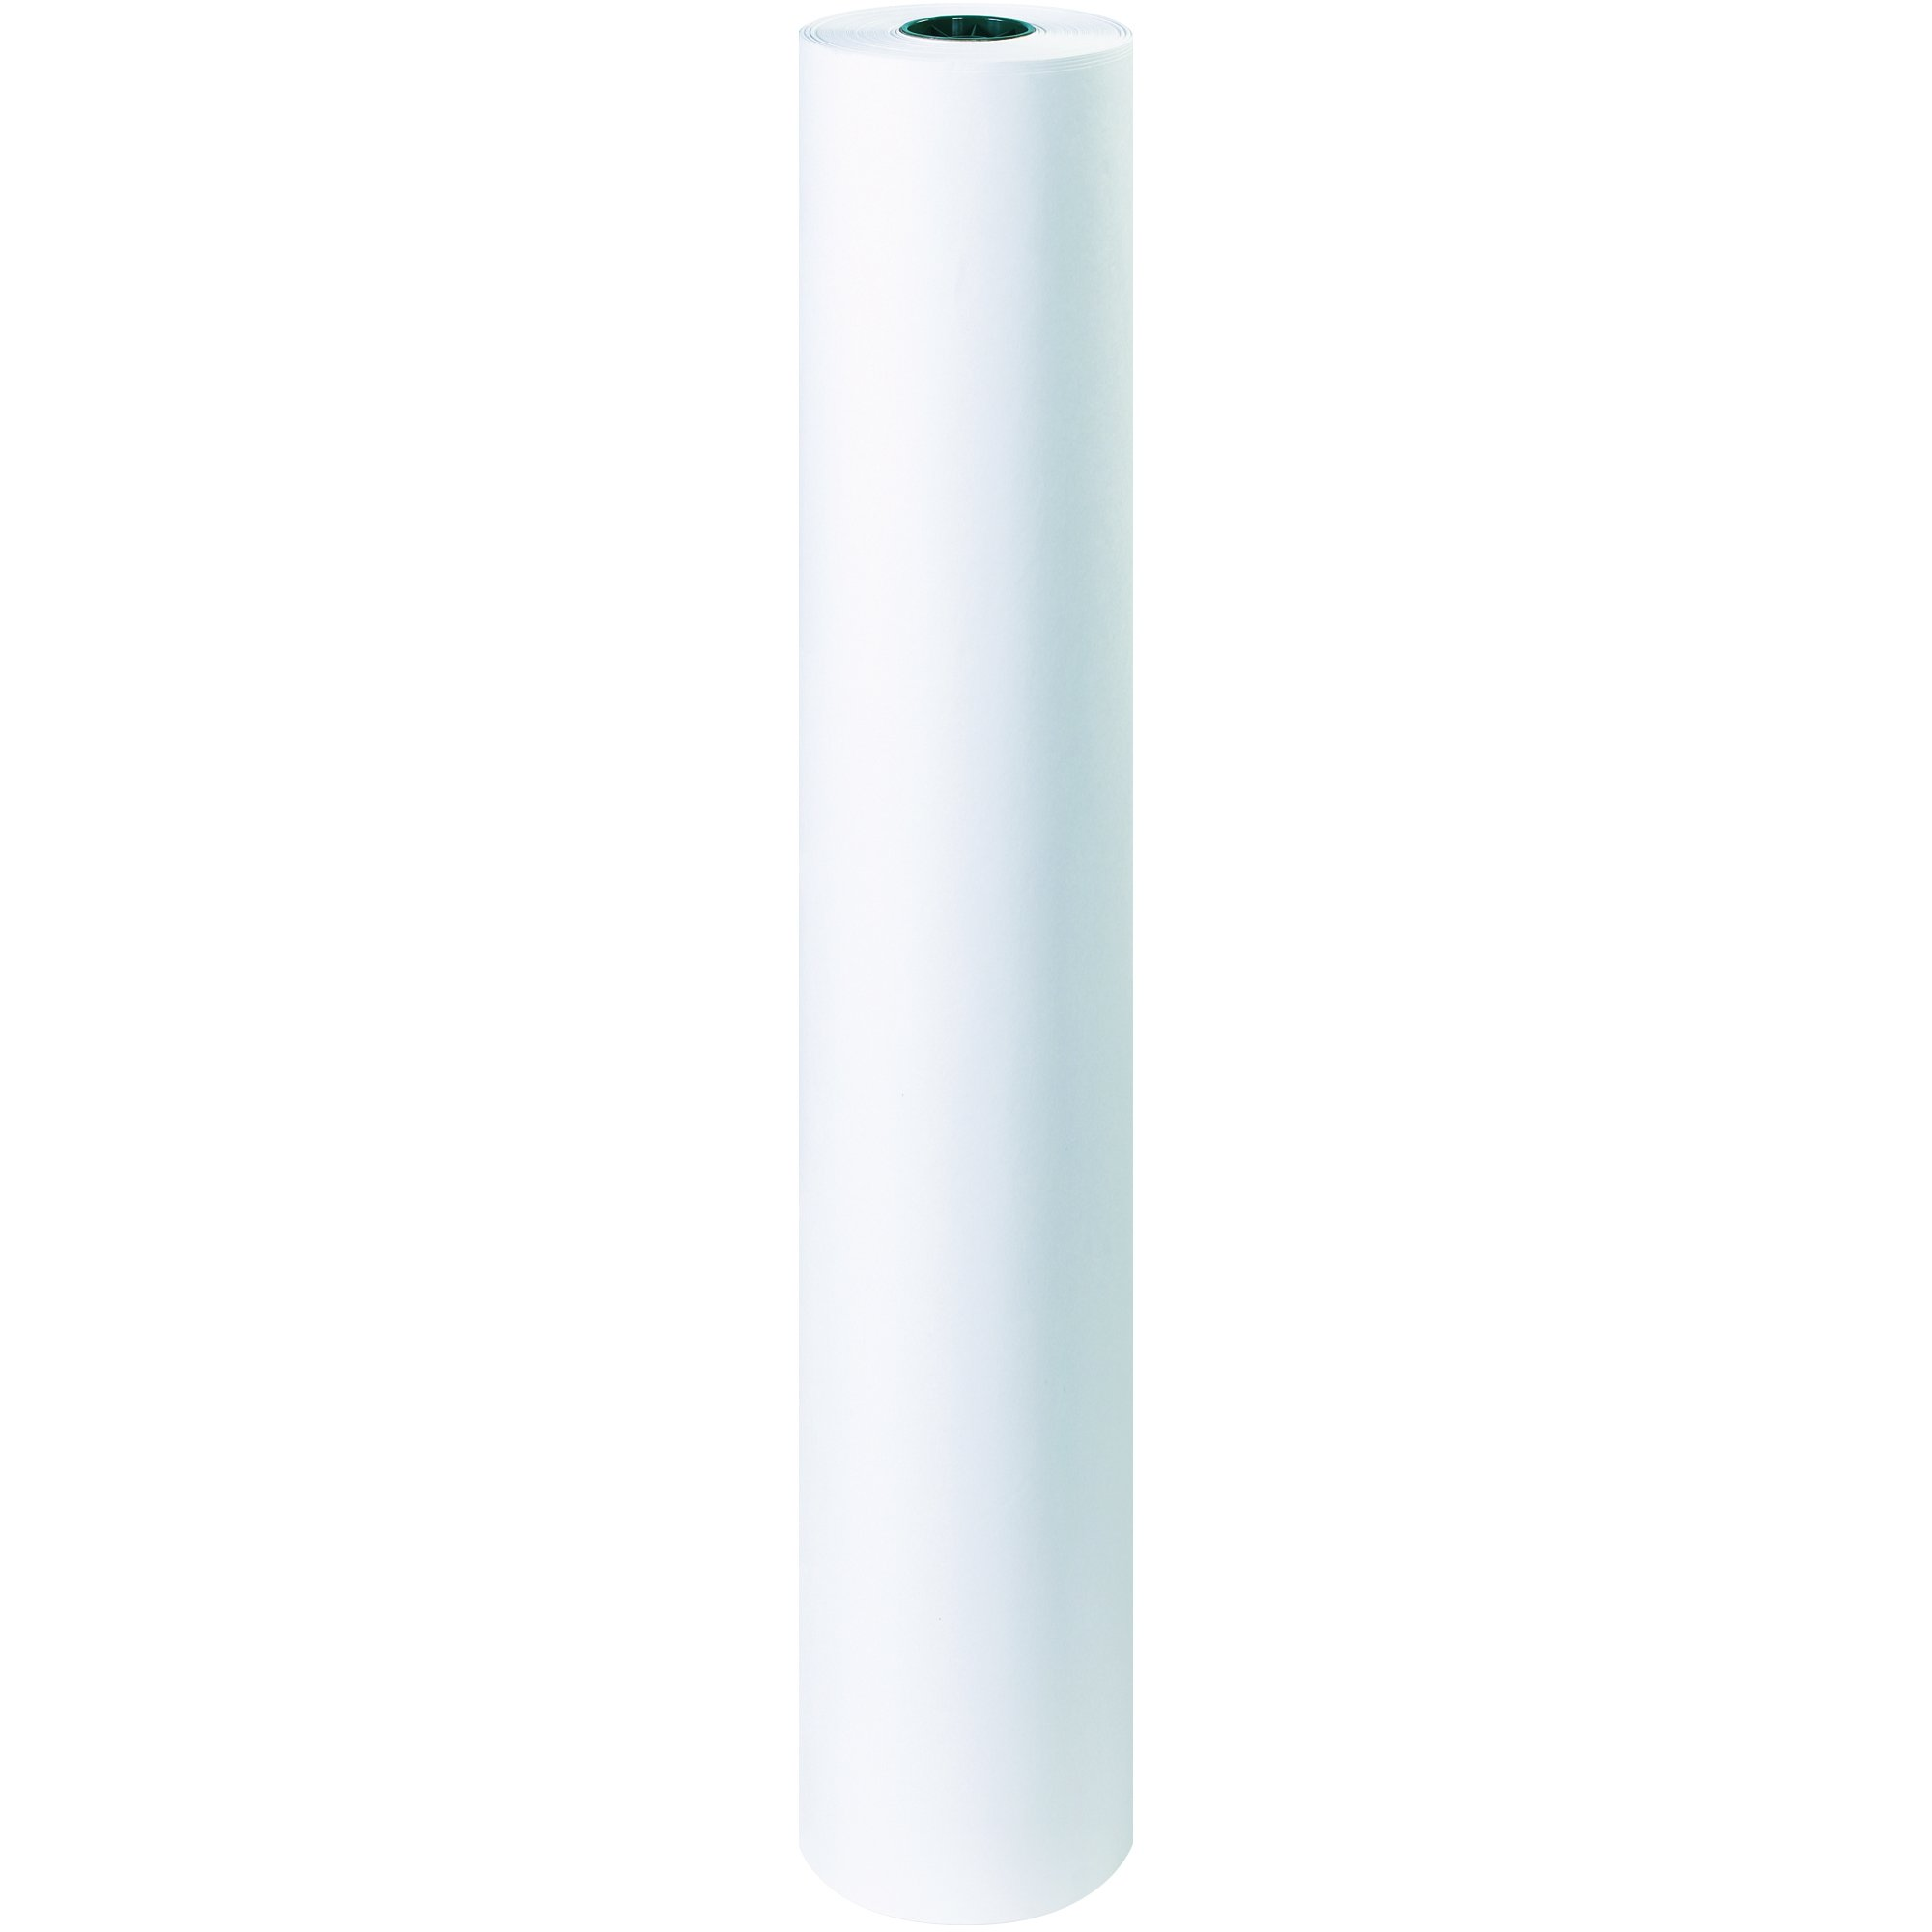 BOX USA BBP4840W 40# Butcher Paper, 48'' x 1000', White